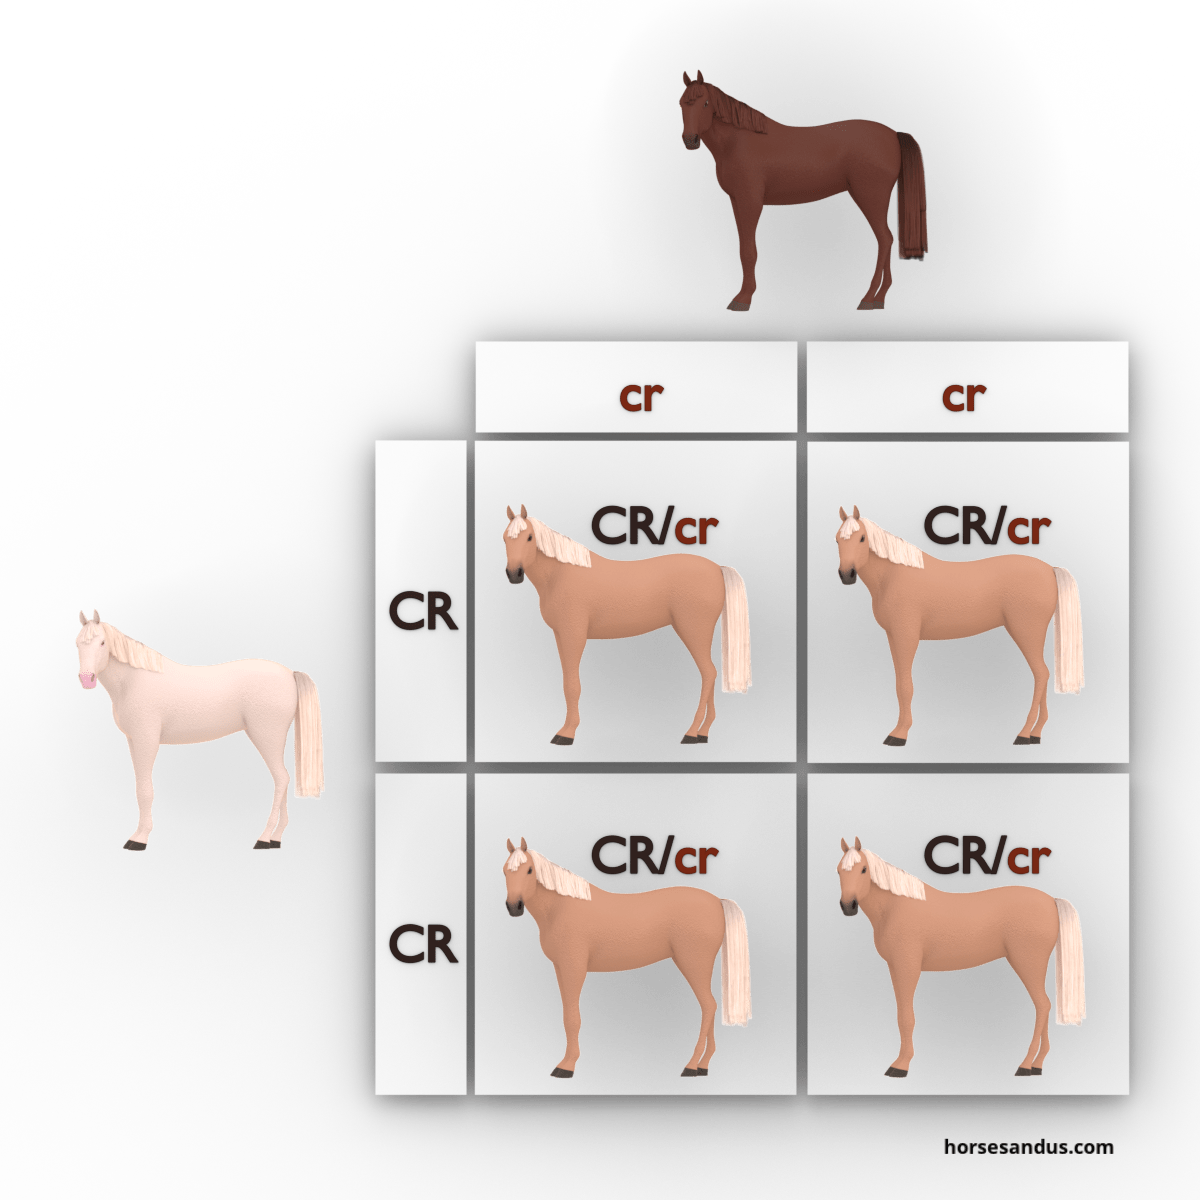 equine cream dilution gene - cremello, chestnut and palomino